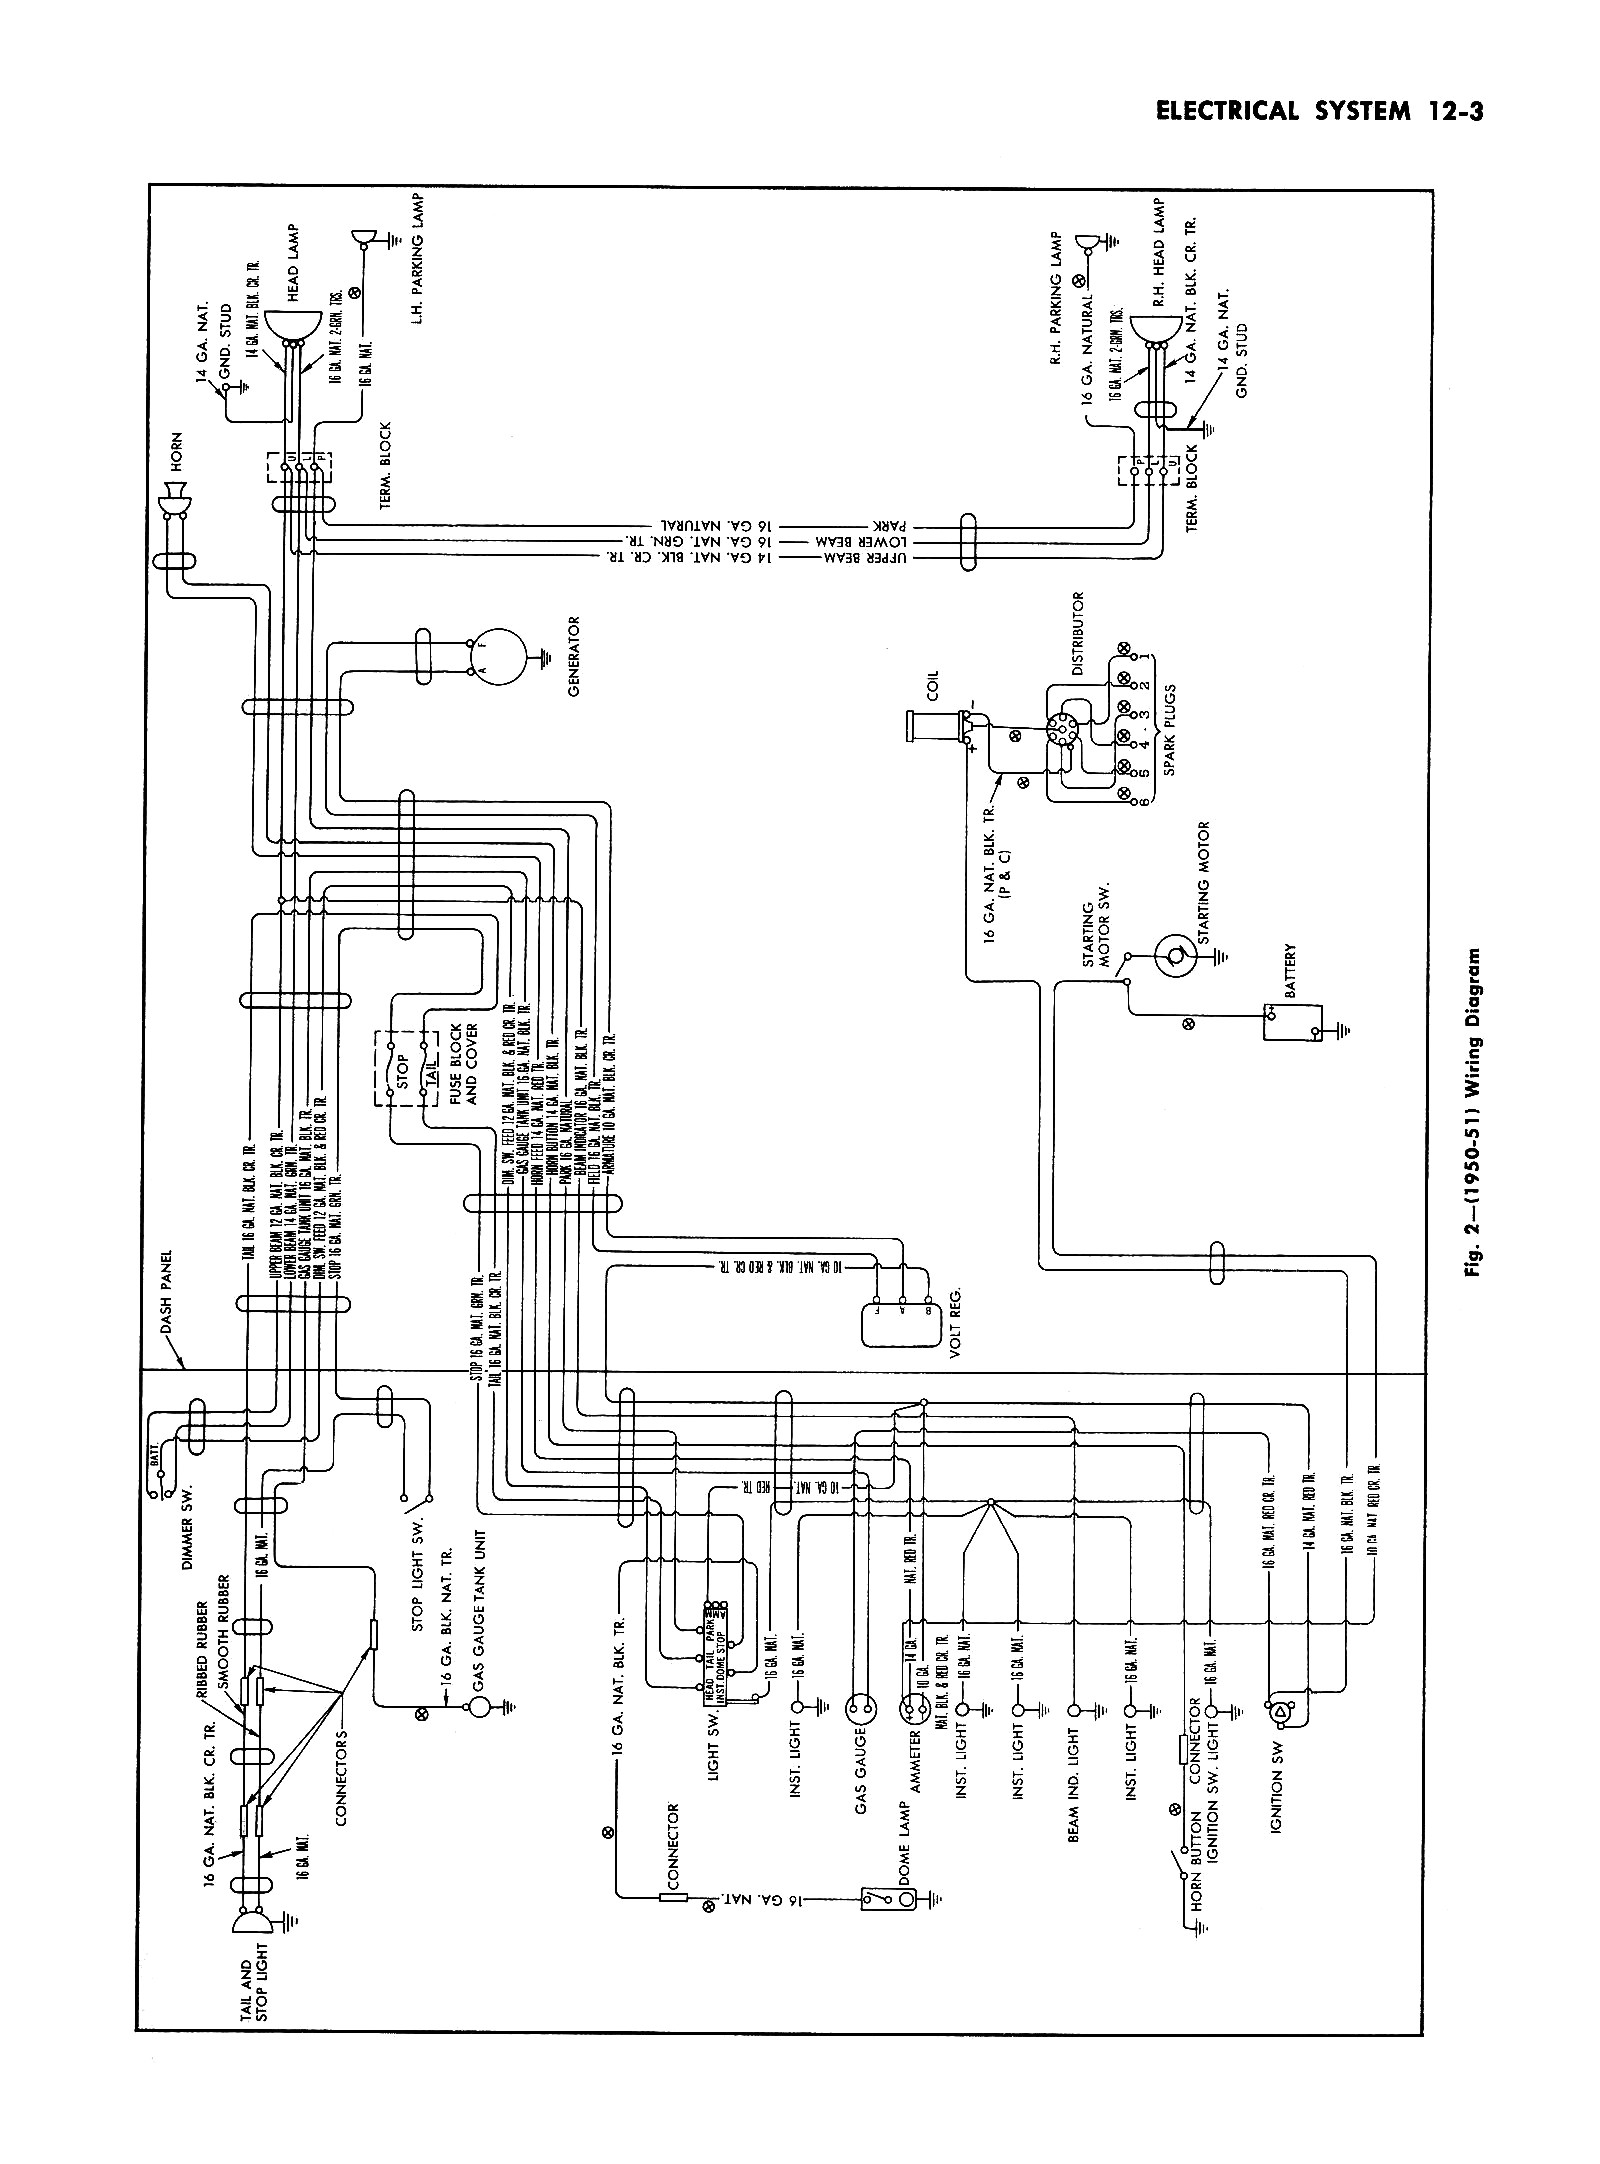 Starting Circuit Diagram For The 1949 52 Chevrolet All Models Data Manufaturecircuit Board Parts Buy Partscircuit 1937 Plymouth Wiring Rh Komagoma Co